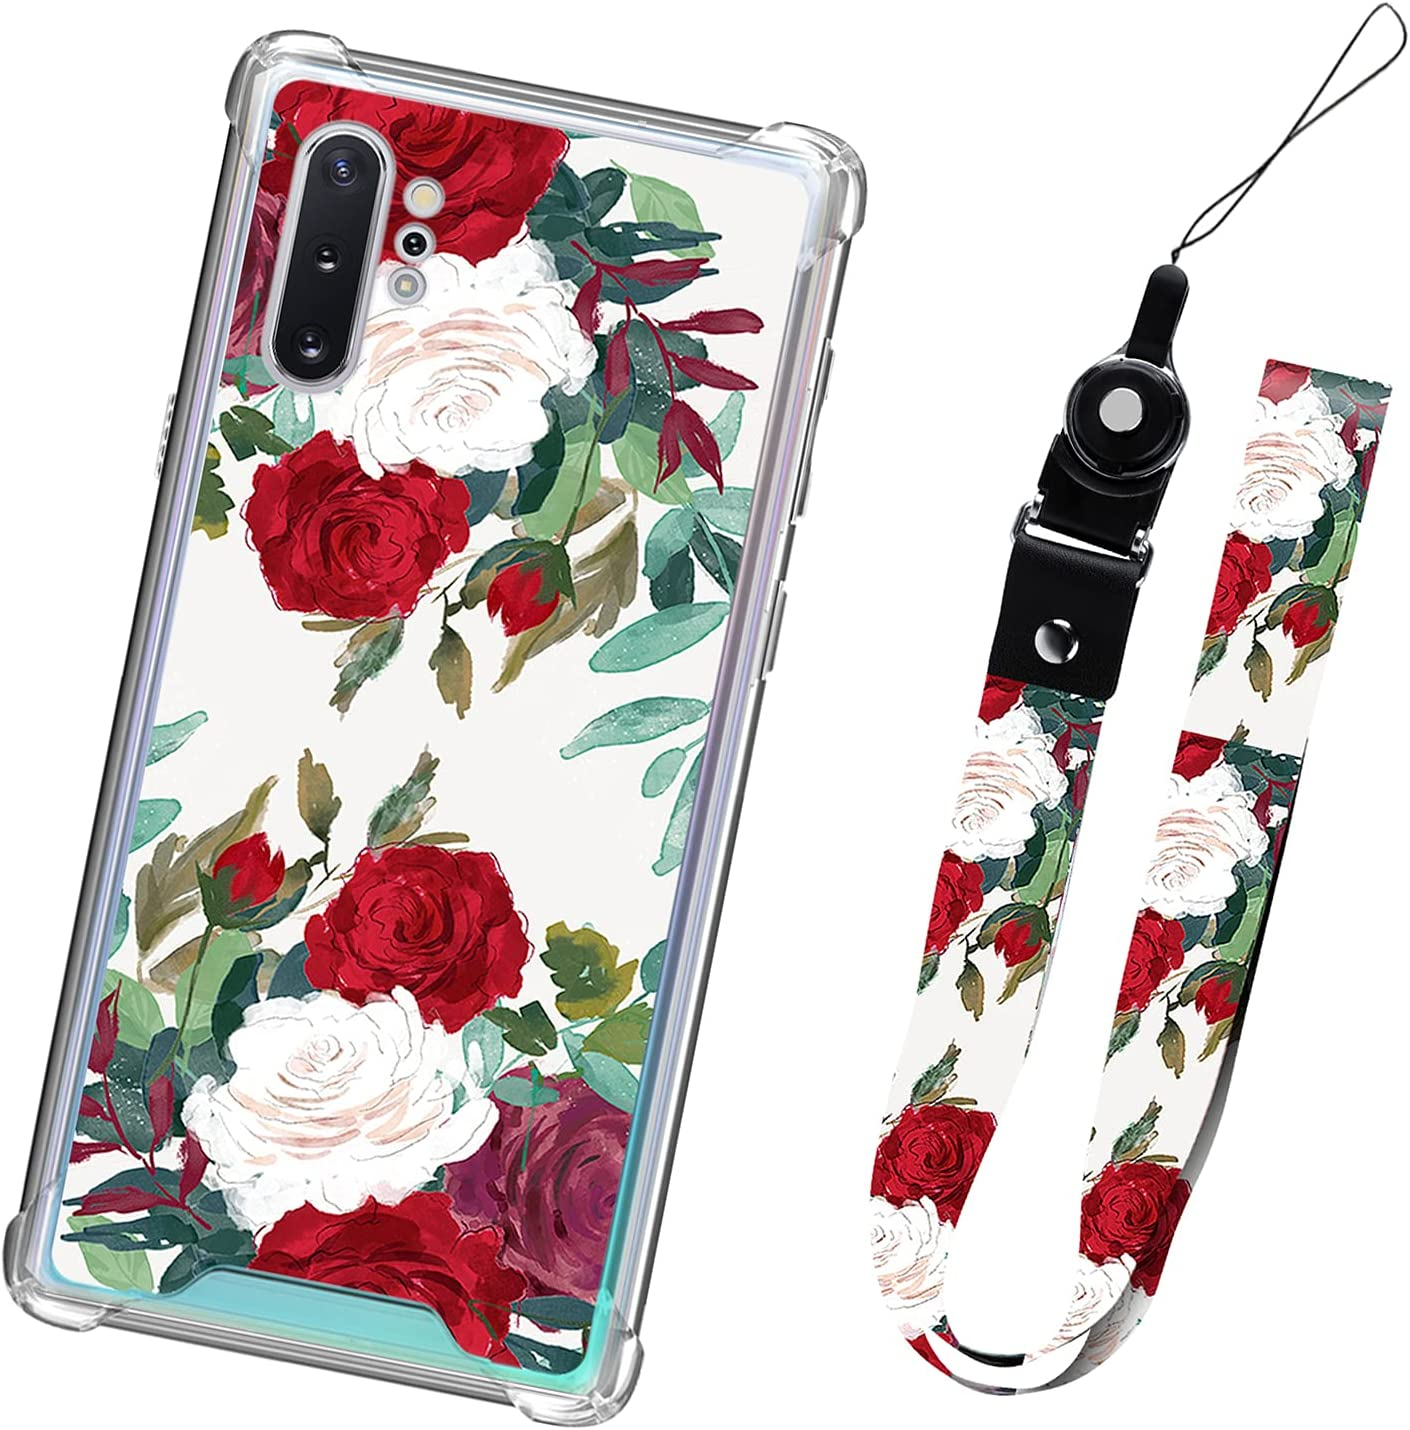 Samsung Galaxy Note 10 Plus Case with Lanyard Strap Flower Floral for Women Girls Protective Heavy Duty Cute Red Roses Pattern Cell Phone Bumper Cover for Galaxy Note 10 Plus 5G 6.8